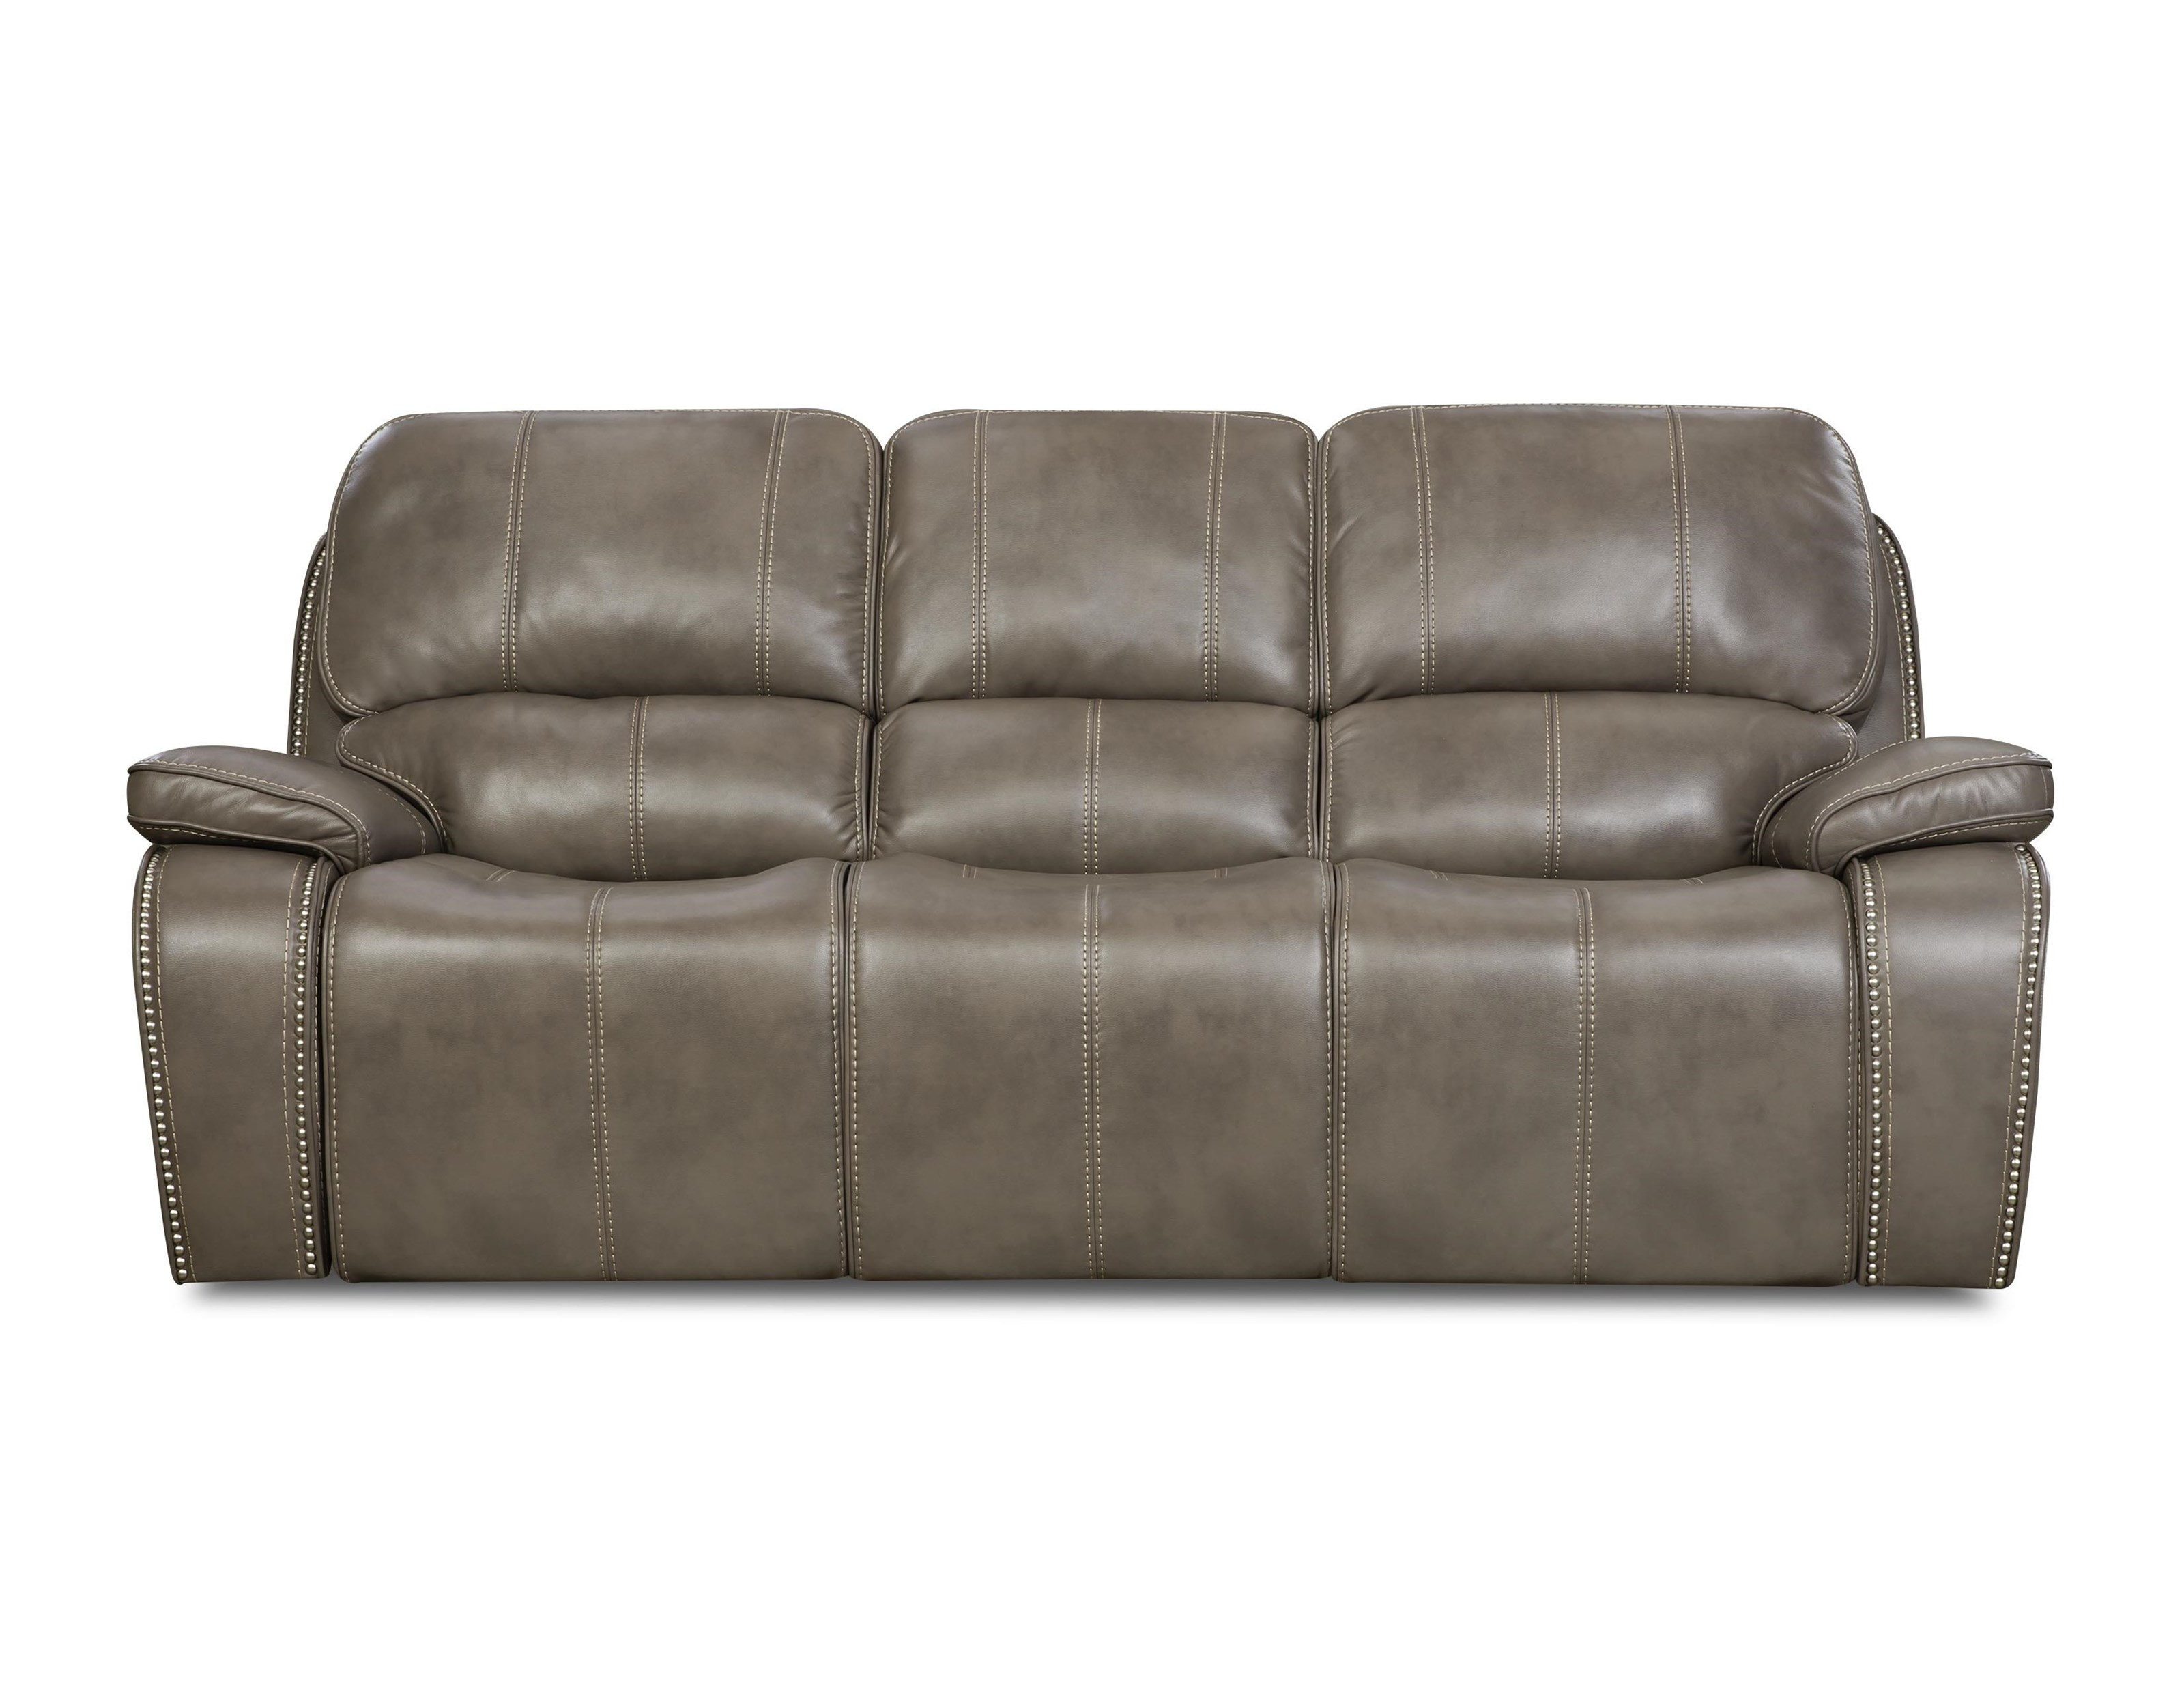 Corinthian Jamestown Smoke Reclining Sofa - Item Number: 88907-30